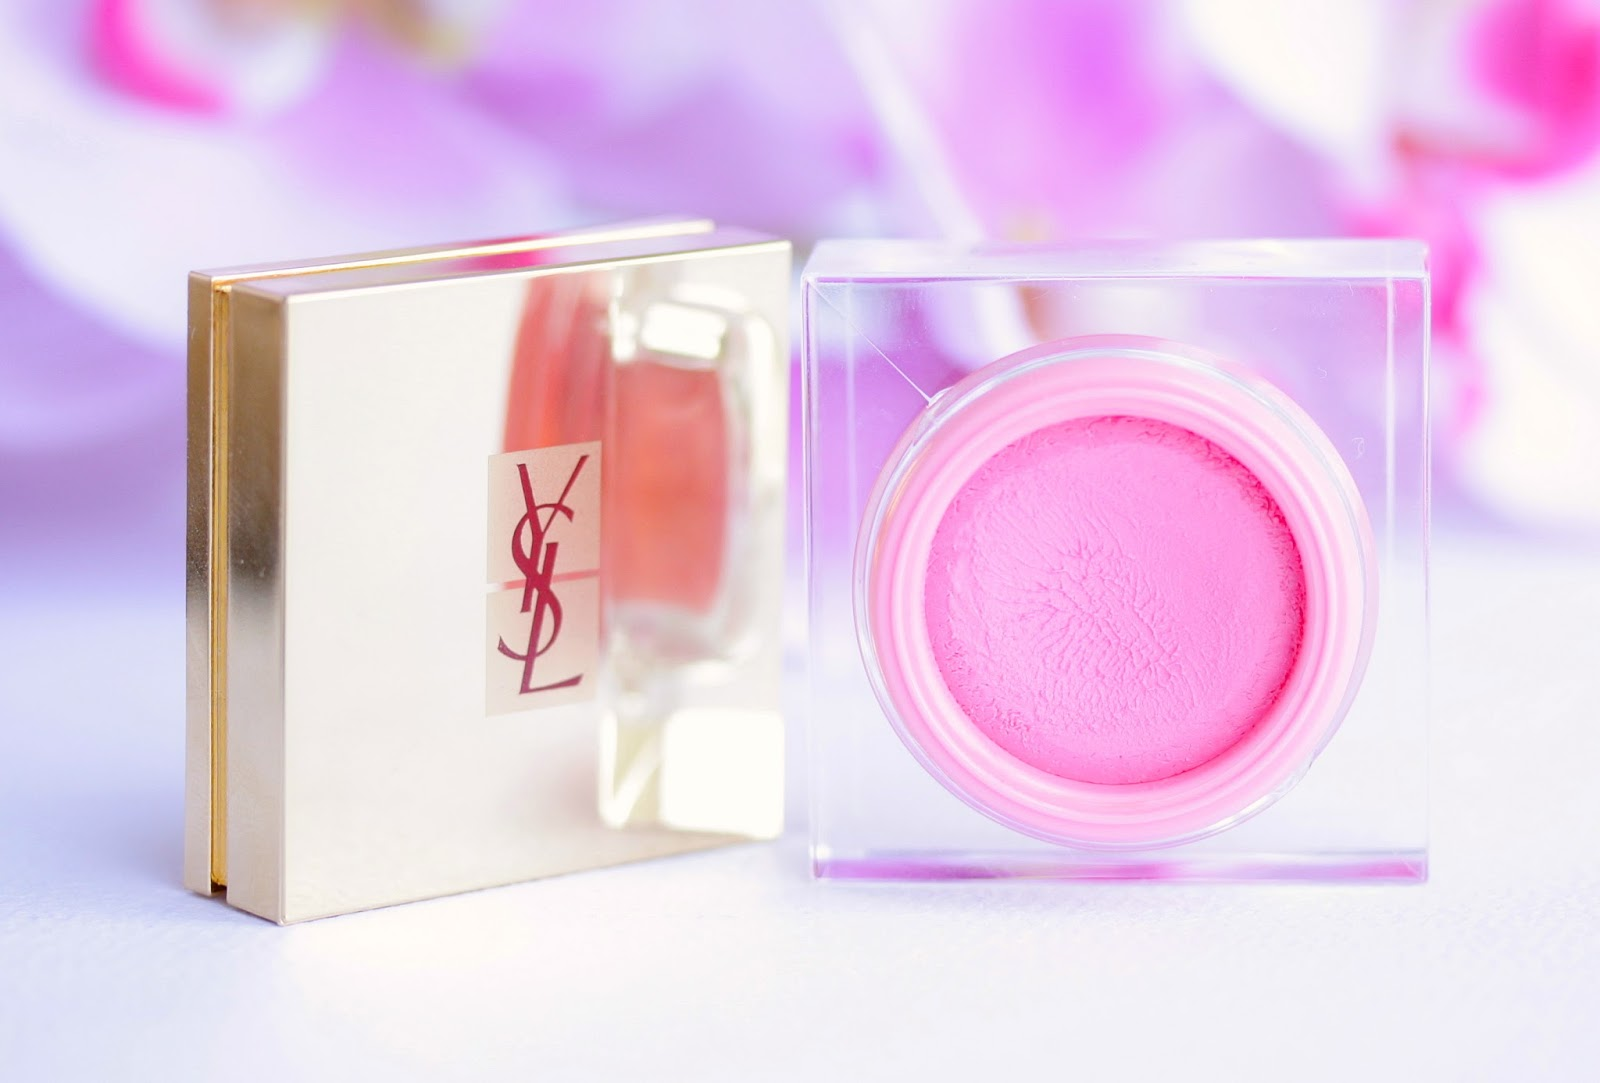 Ysl Cream Blush In 9 Baby Doll Review And Swatches